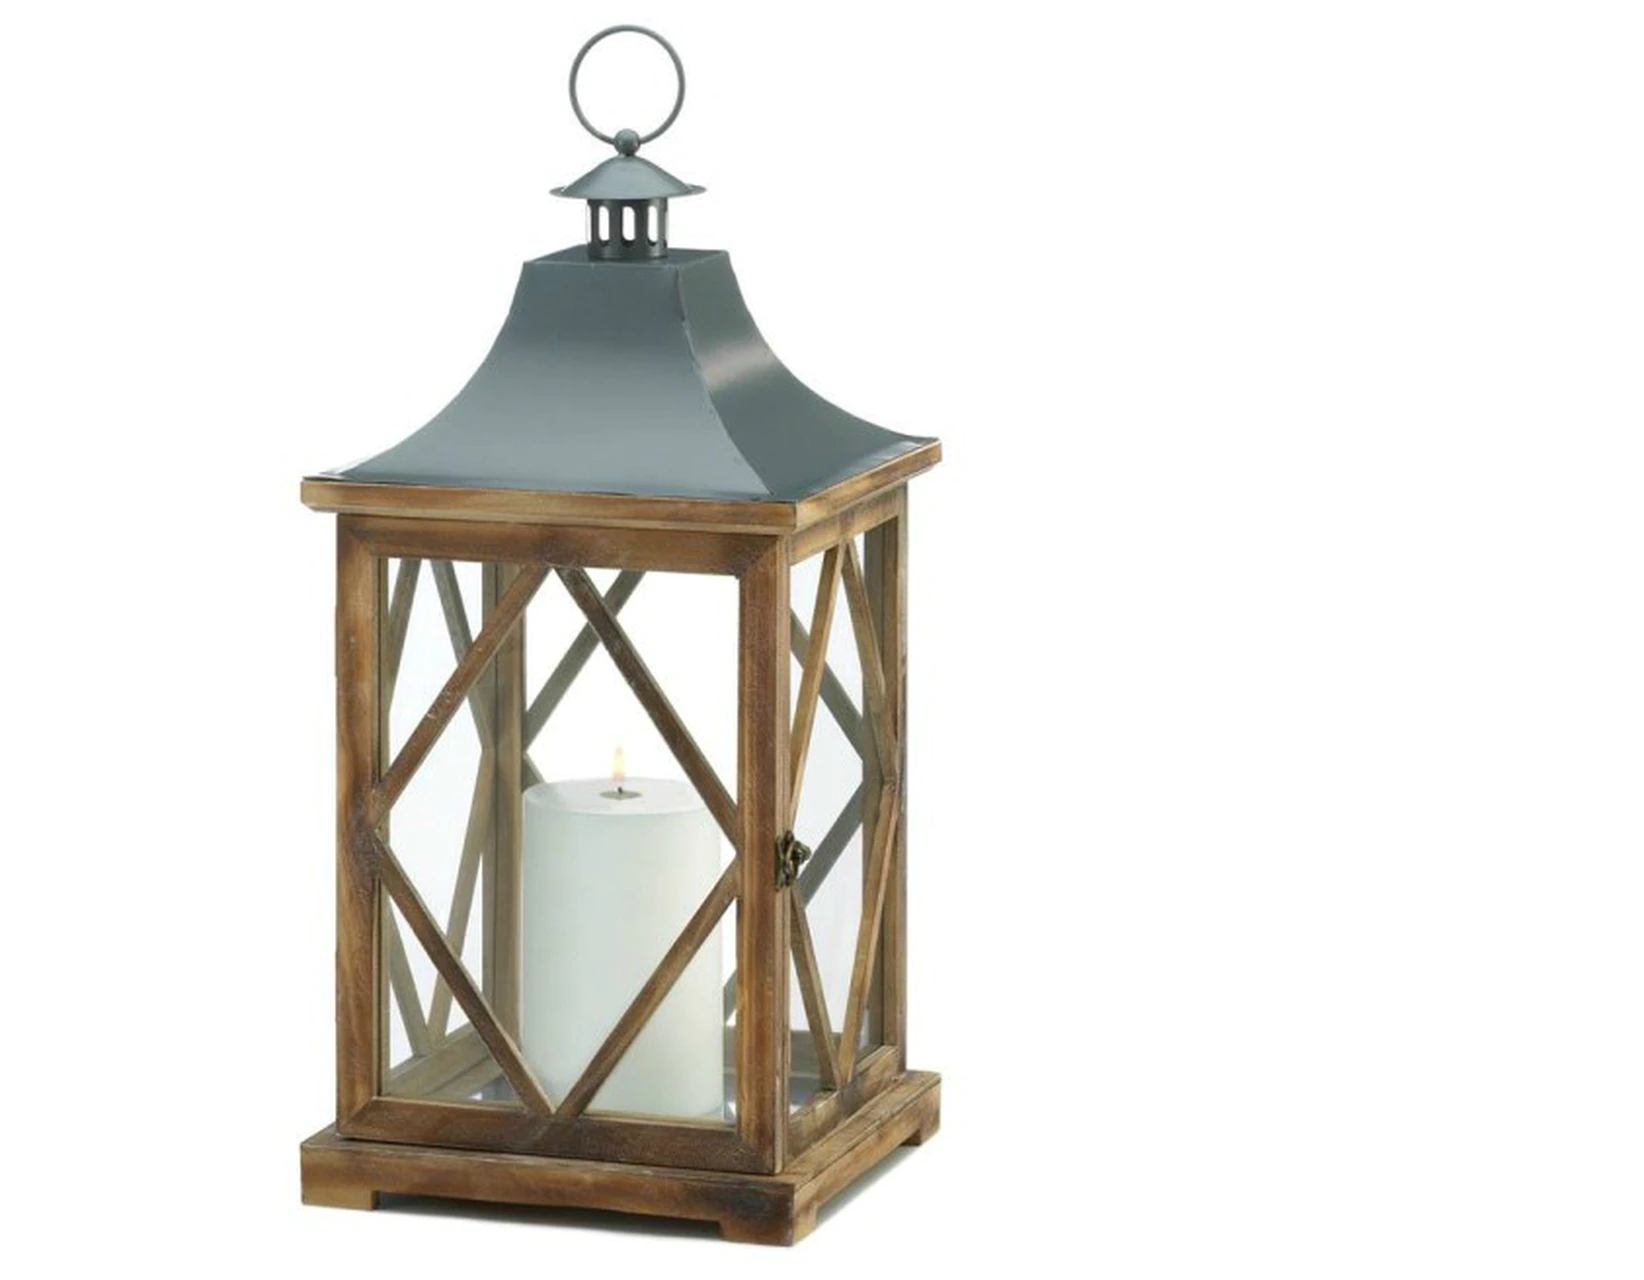 Diamond-Side Wood Candle Lantern - 20.5 inches